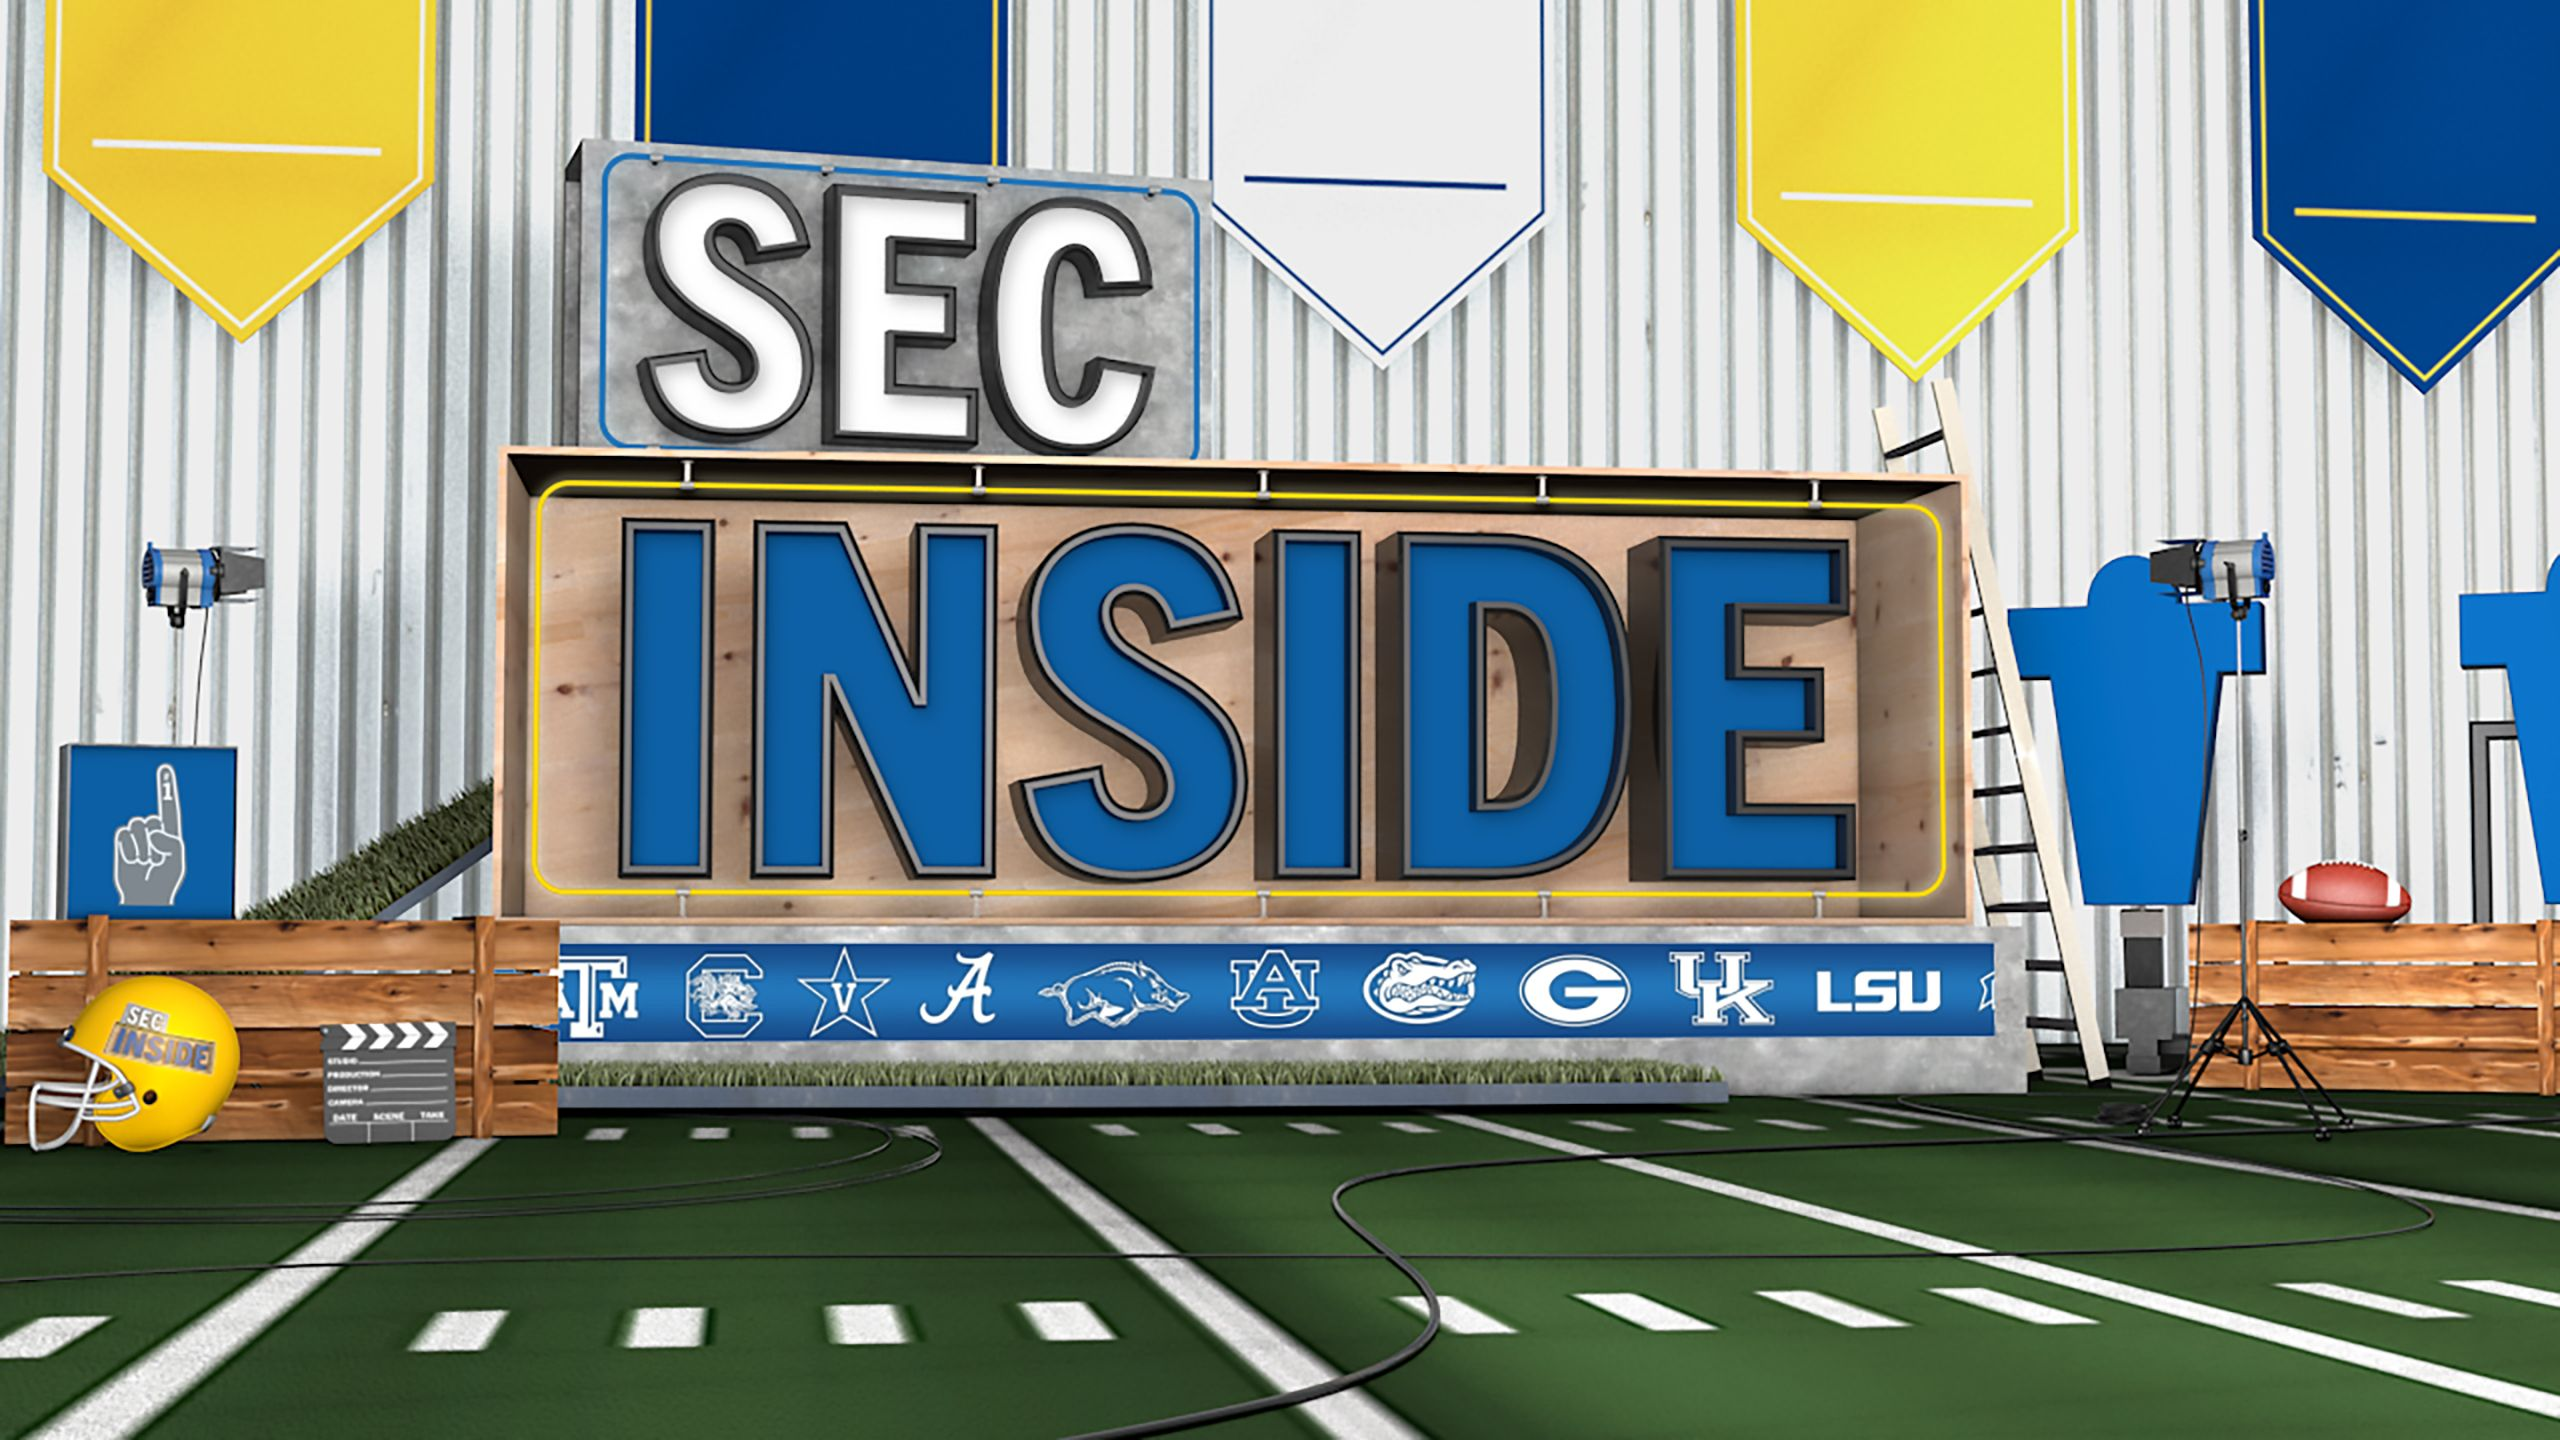 SEC Inside: Kentucky vs. South Carolina Presented by Regions Bank